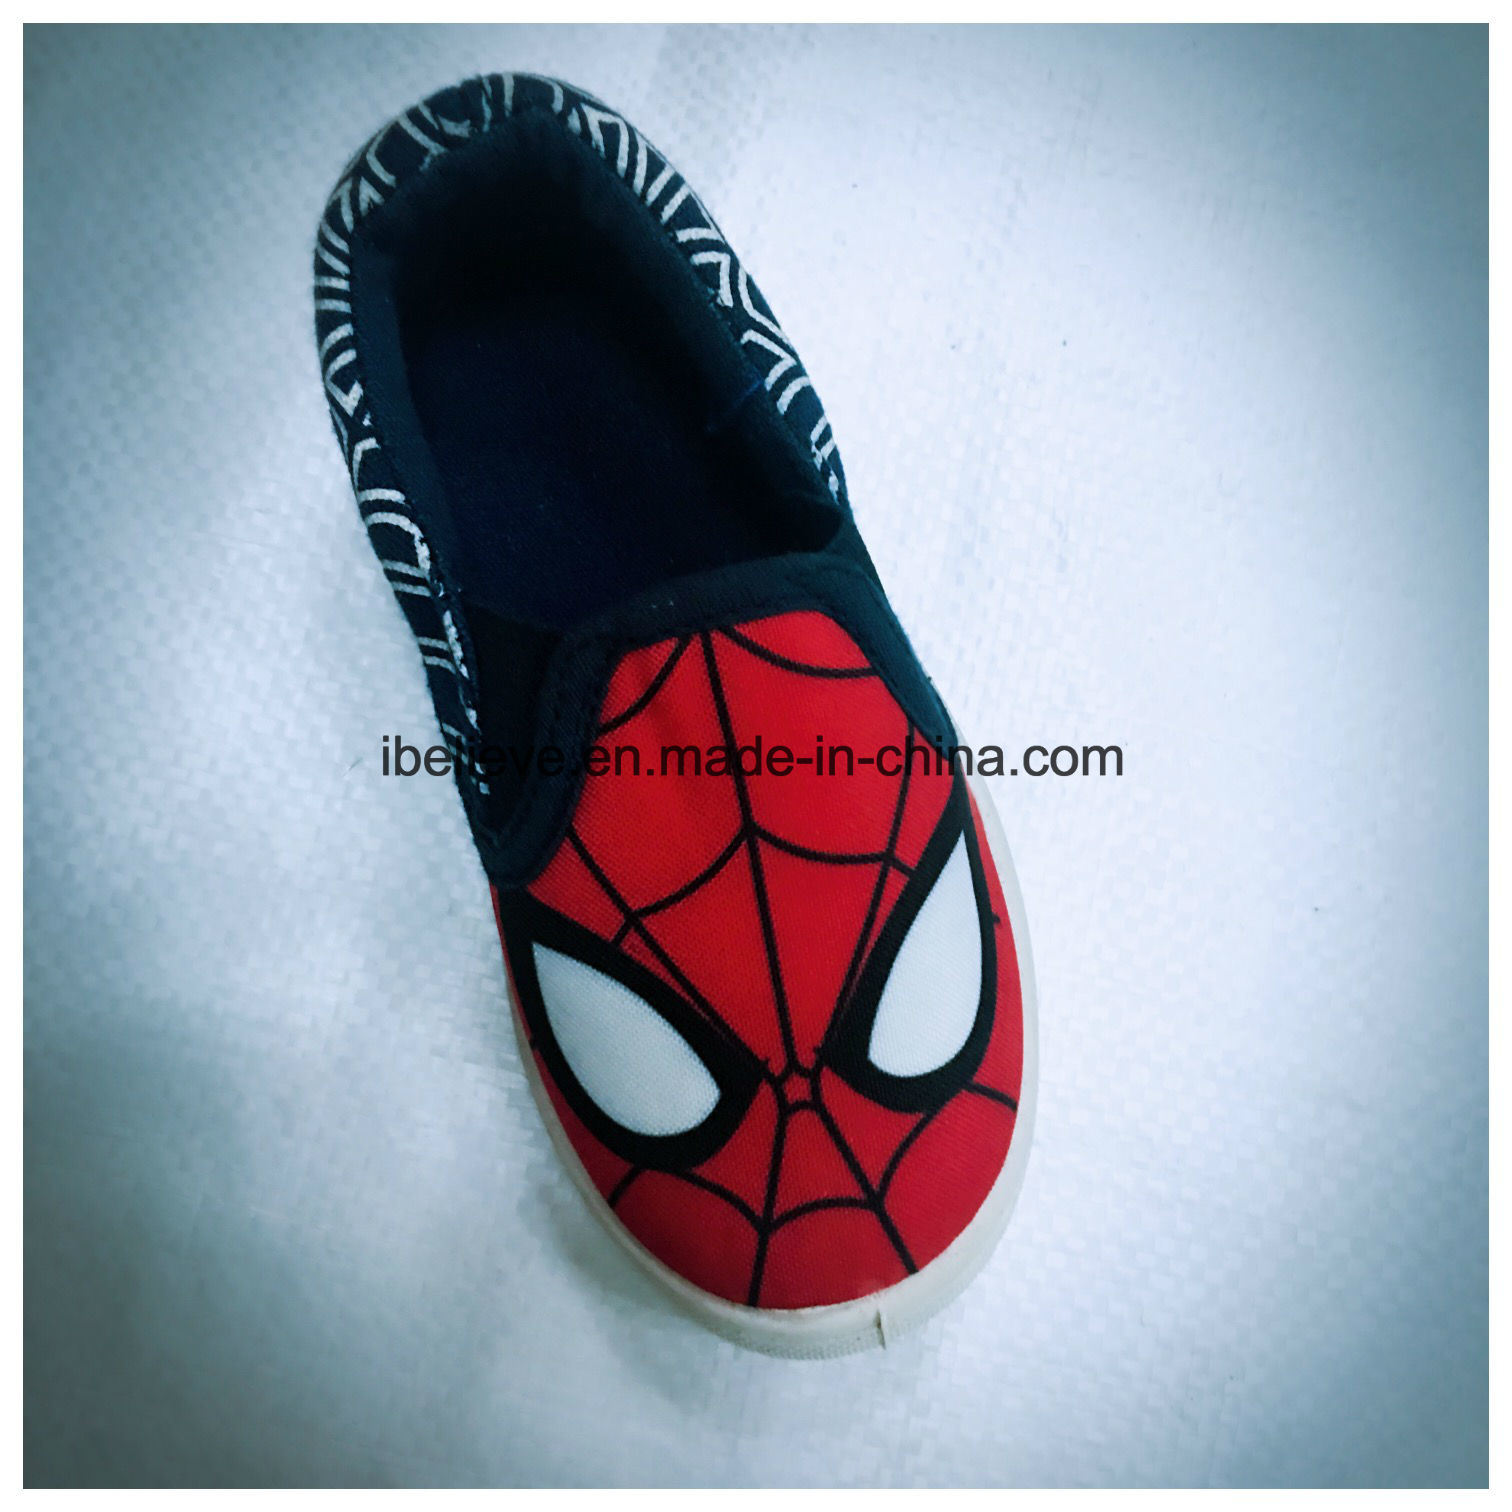 Spider Man Printing Children Footwear with Good Quality and Soft Outsole Comfortable to Walk